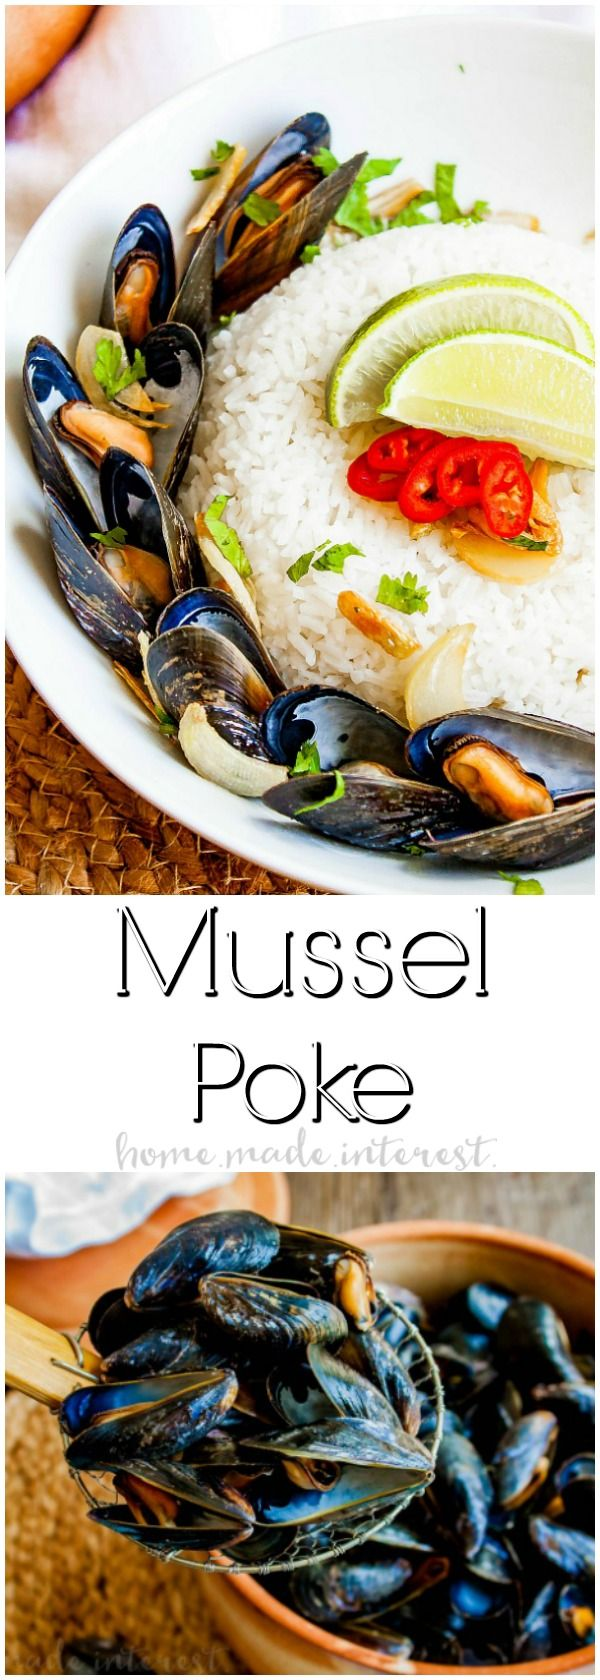 Mussel Poke | This easy mussels recipe is perfect as a mussels appetizer or a complete meal. Mussel Poke combines Thai-inspired flavors and delicately steamed mussels into a delicious mussels recipes bursting with flavor.  This is an easy seafood recipe served with rice that you will love. #PEIMusselsOnTheMenu #ad